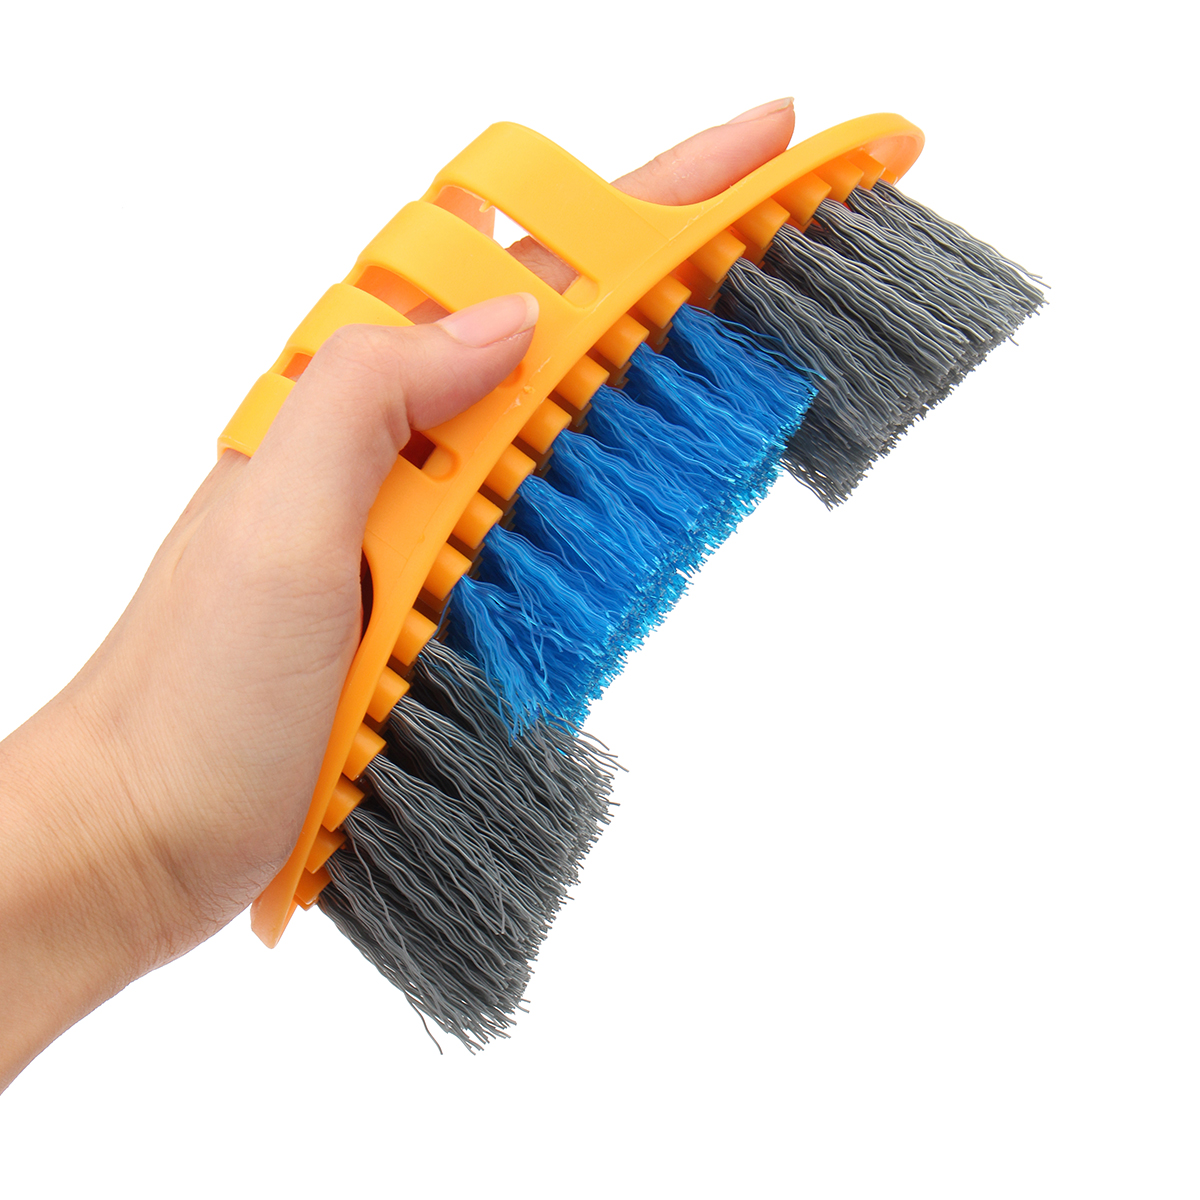 BIKIGHT 6 Pcs Bicycle Cleaing Tool Kits Cleaing Set Chain Cleaner Gloves Tire Brushes